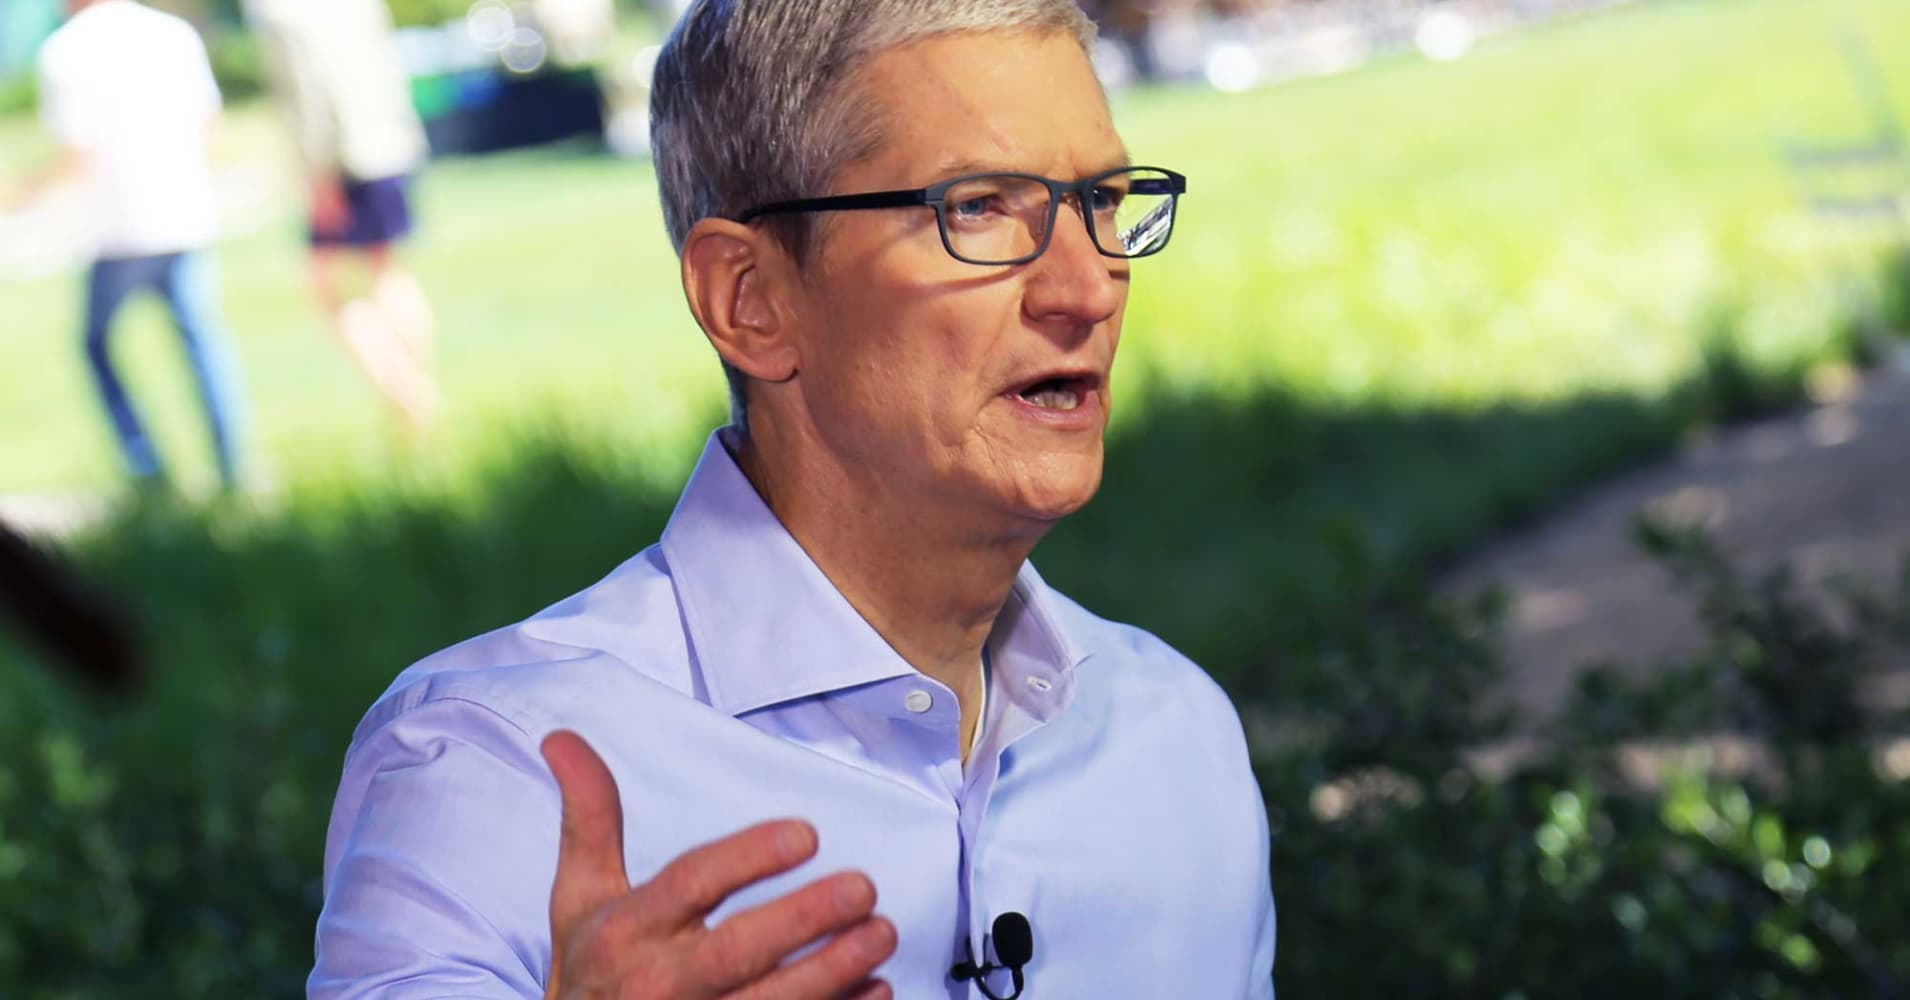 Thrilled by the response apple ceo tim cook said in a tweet that it - Thrilled By The Response Apple Ceo Tim Cook Said In A Tweet That It 54